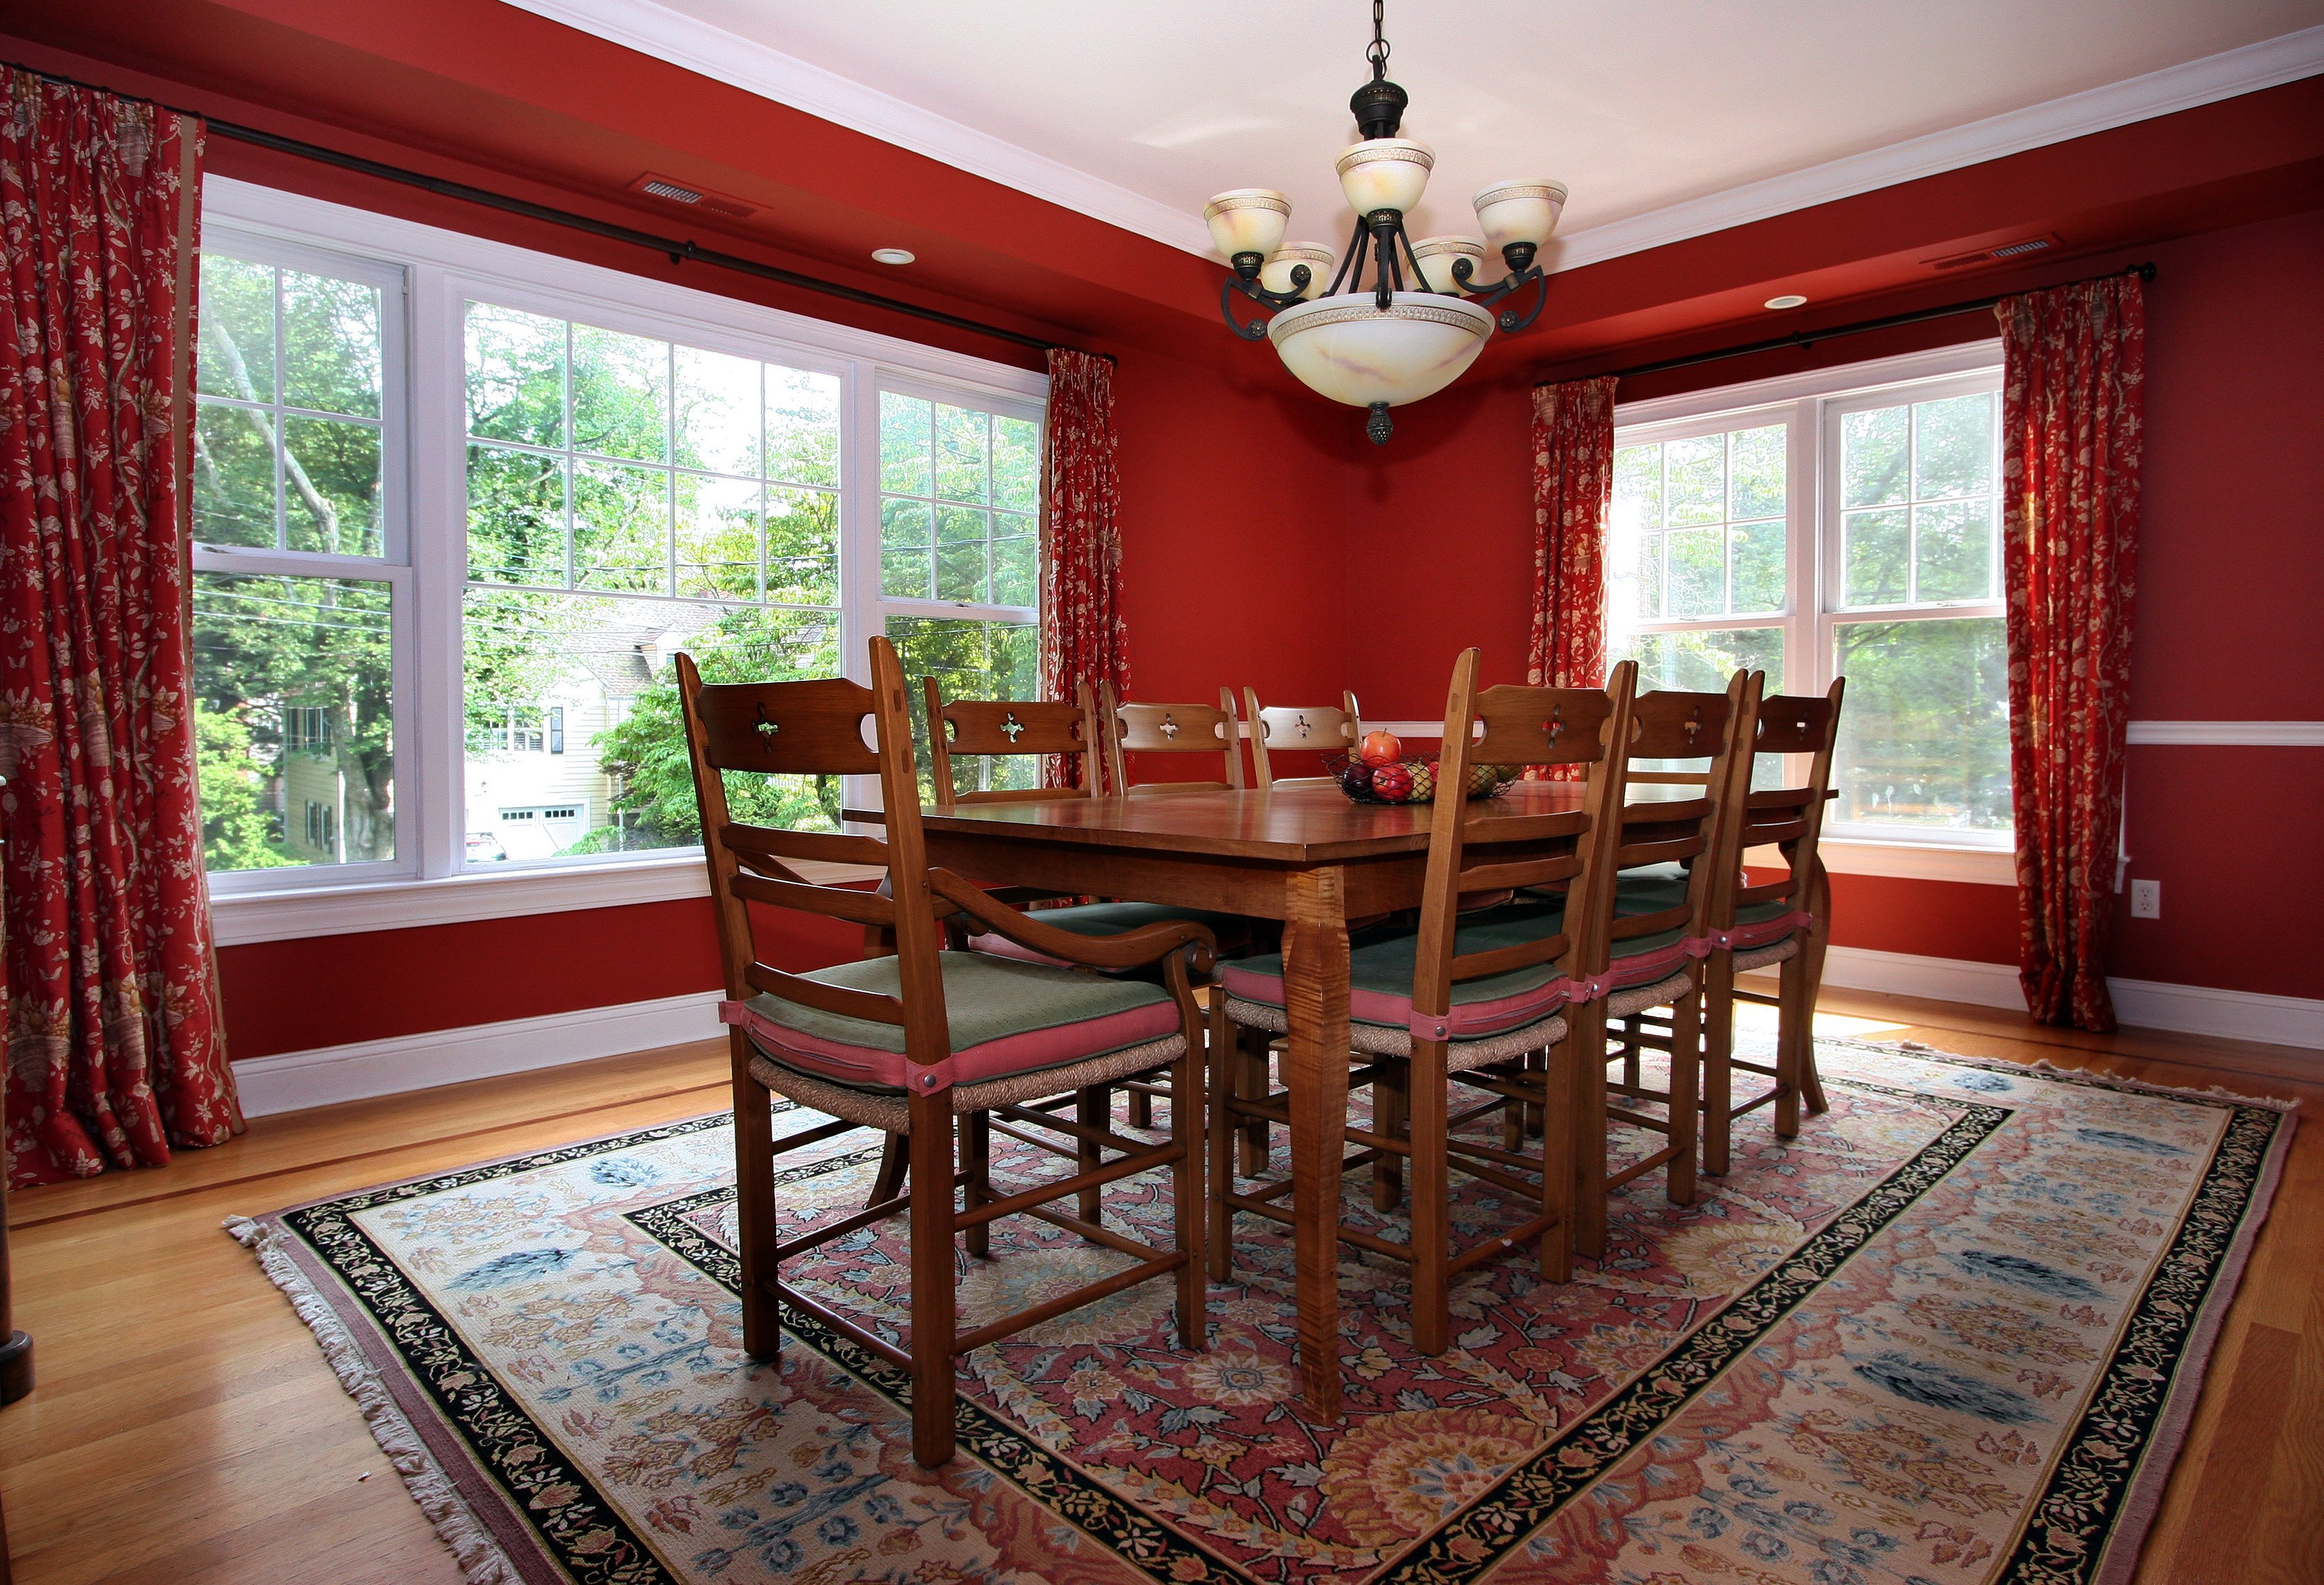 general contractor, dining room renovation by SIP Building Solutions general contractors - Westport, Fairfield, Stamford, Greenwich, Danbury CT